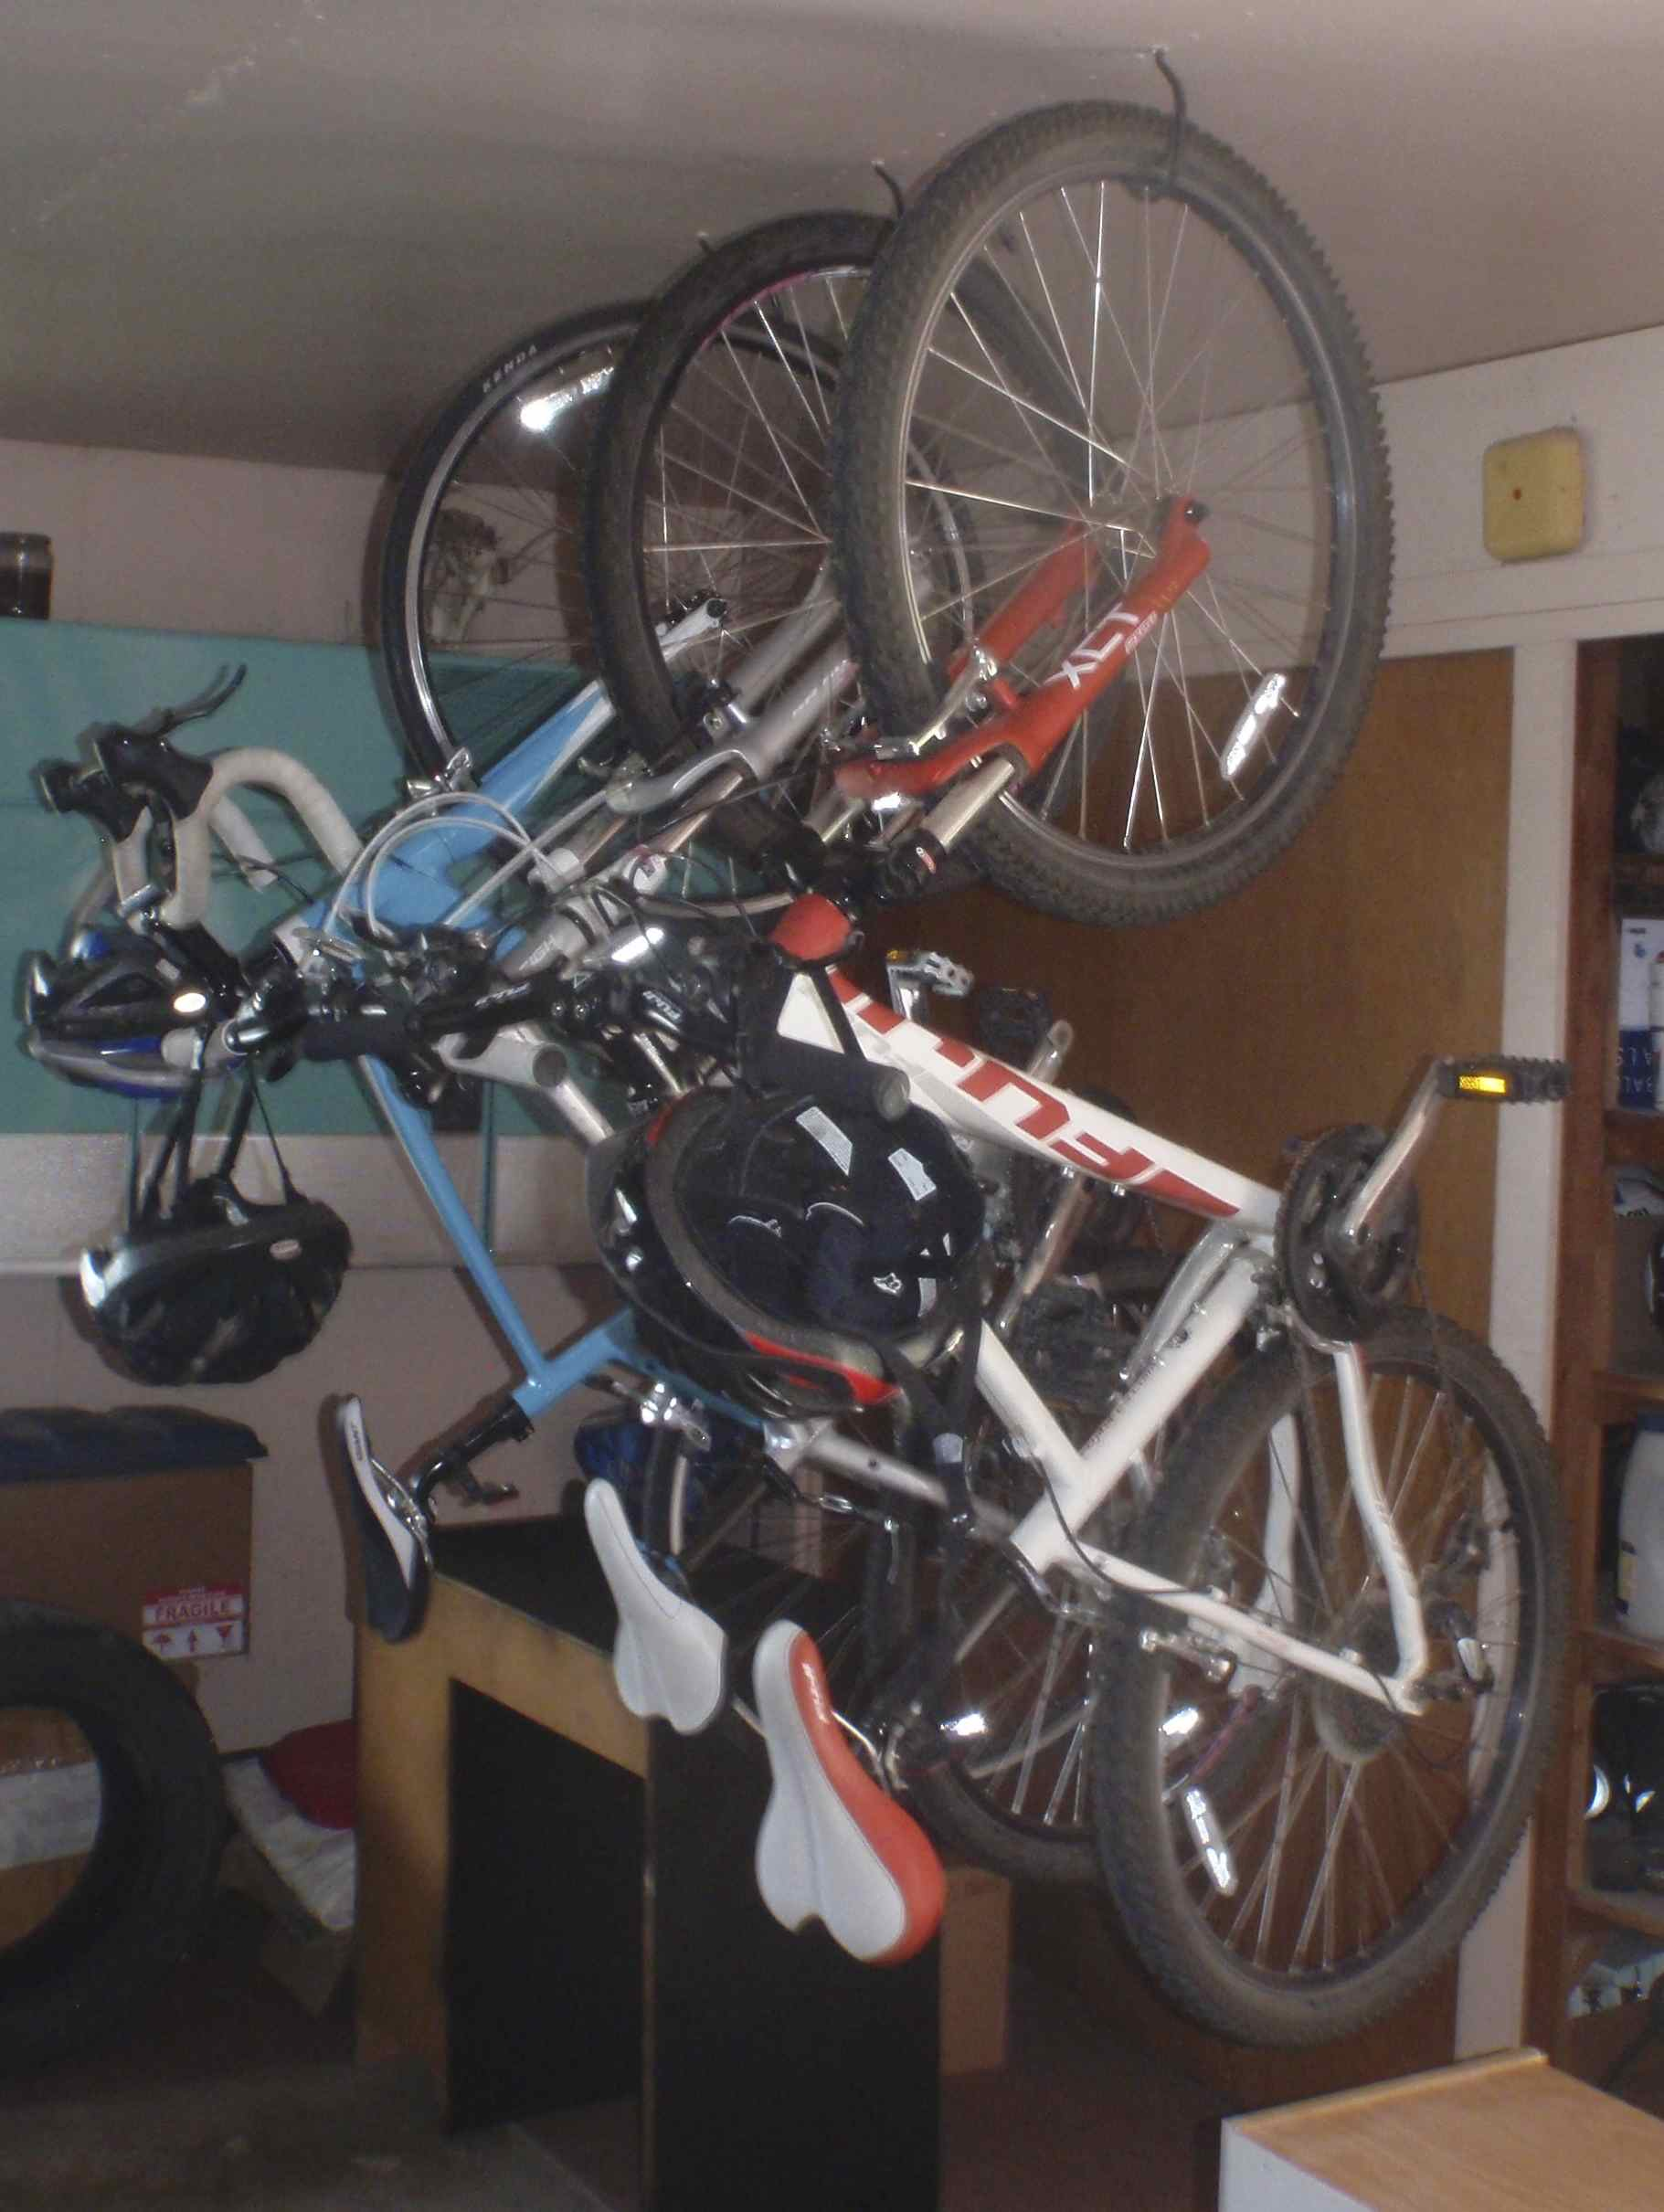 garage for ideas the in best bikes storage bicycle hang